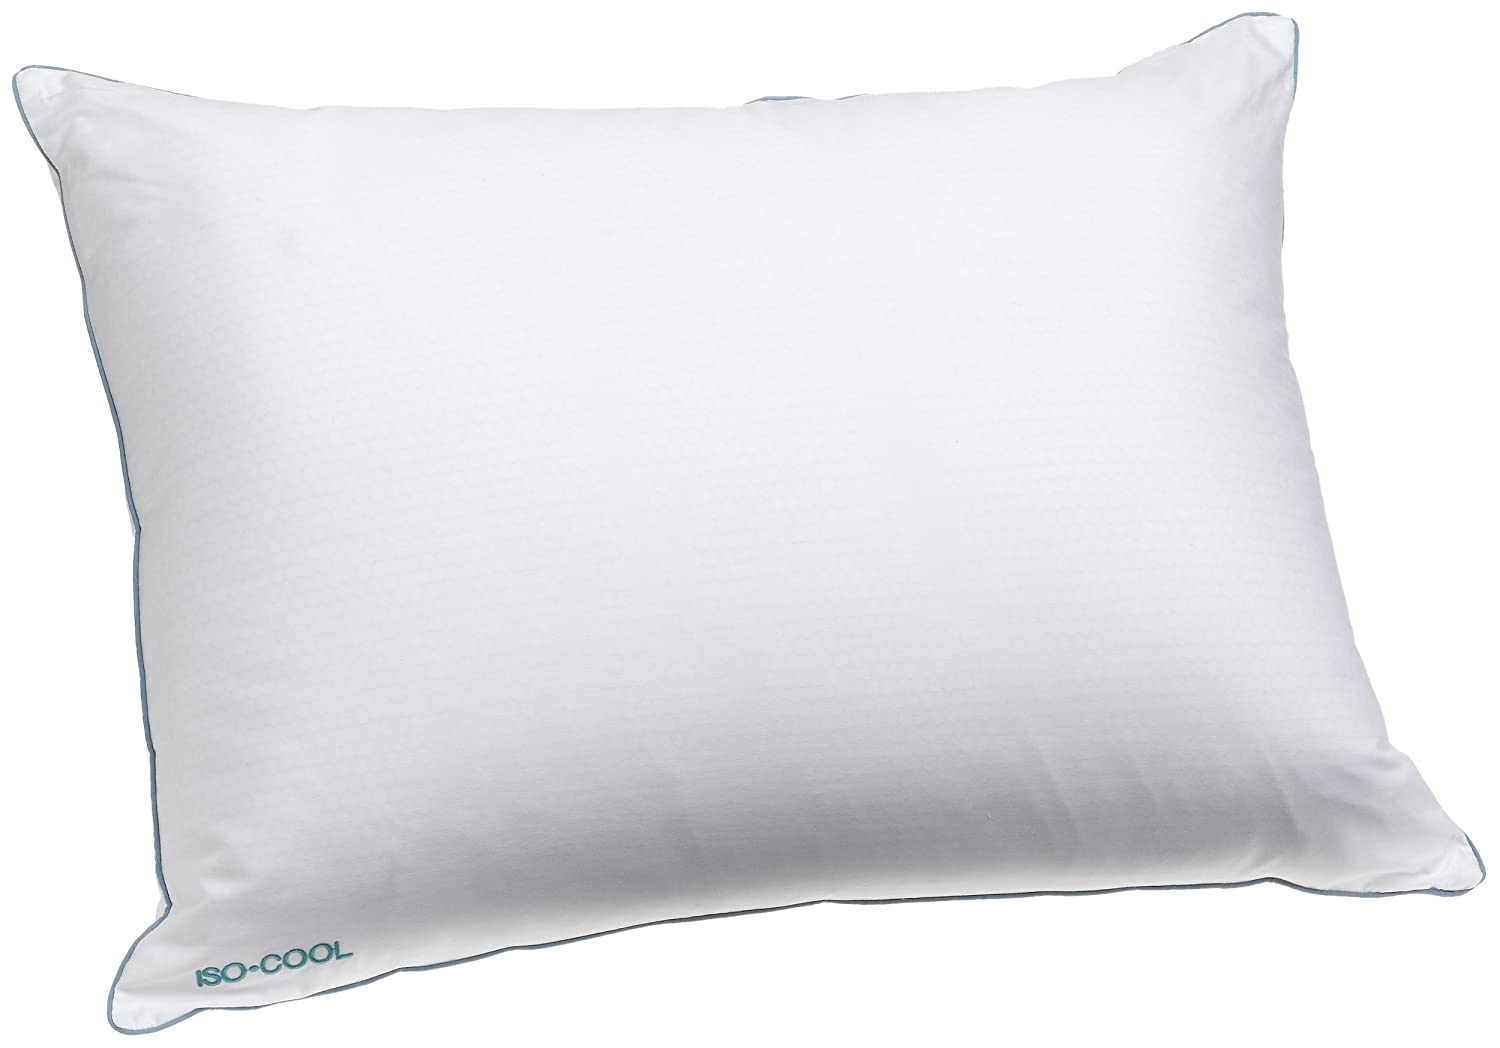 nta keep logo with contour cool products product lifestyle cloud details air pillow